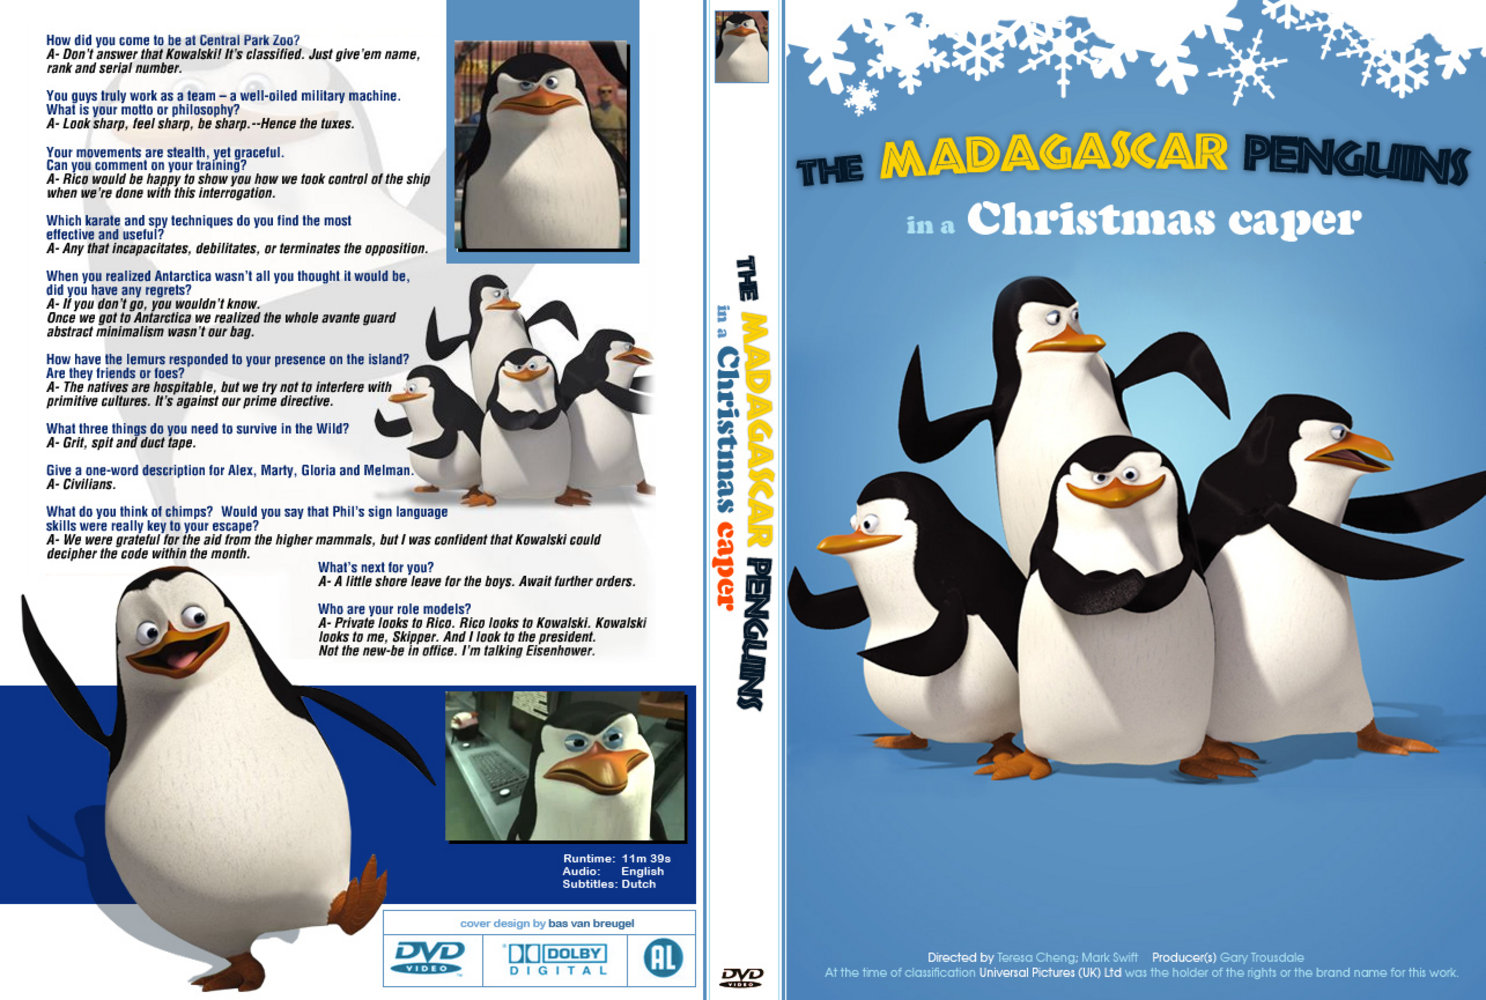 the madagascar penguins in a christmas caper learntoride co